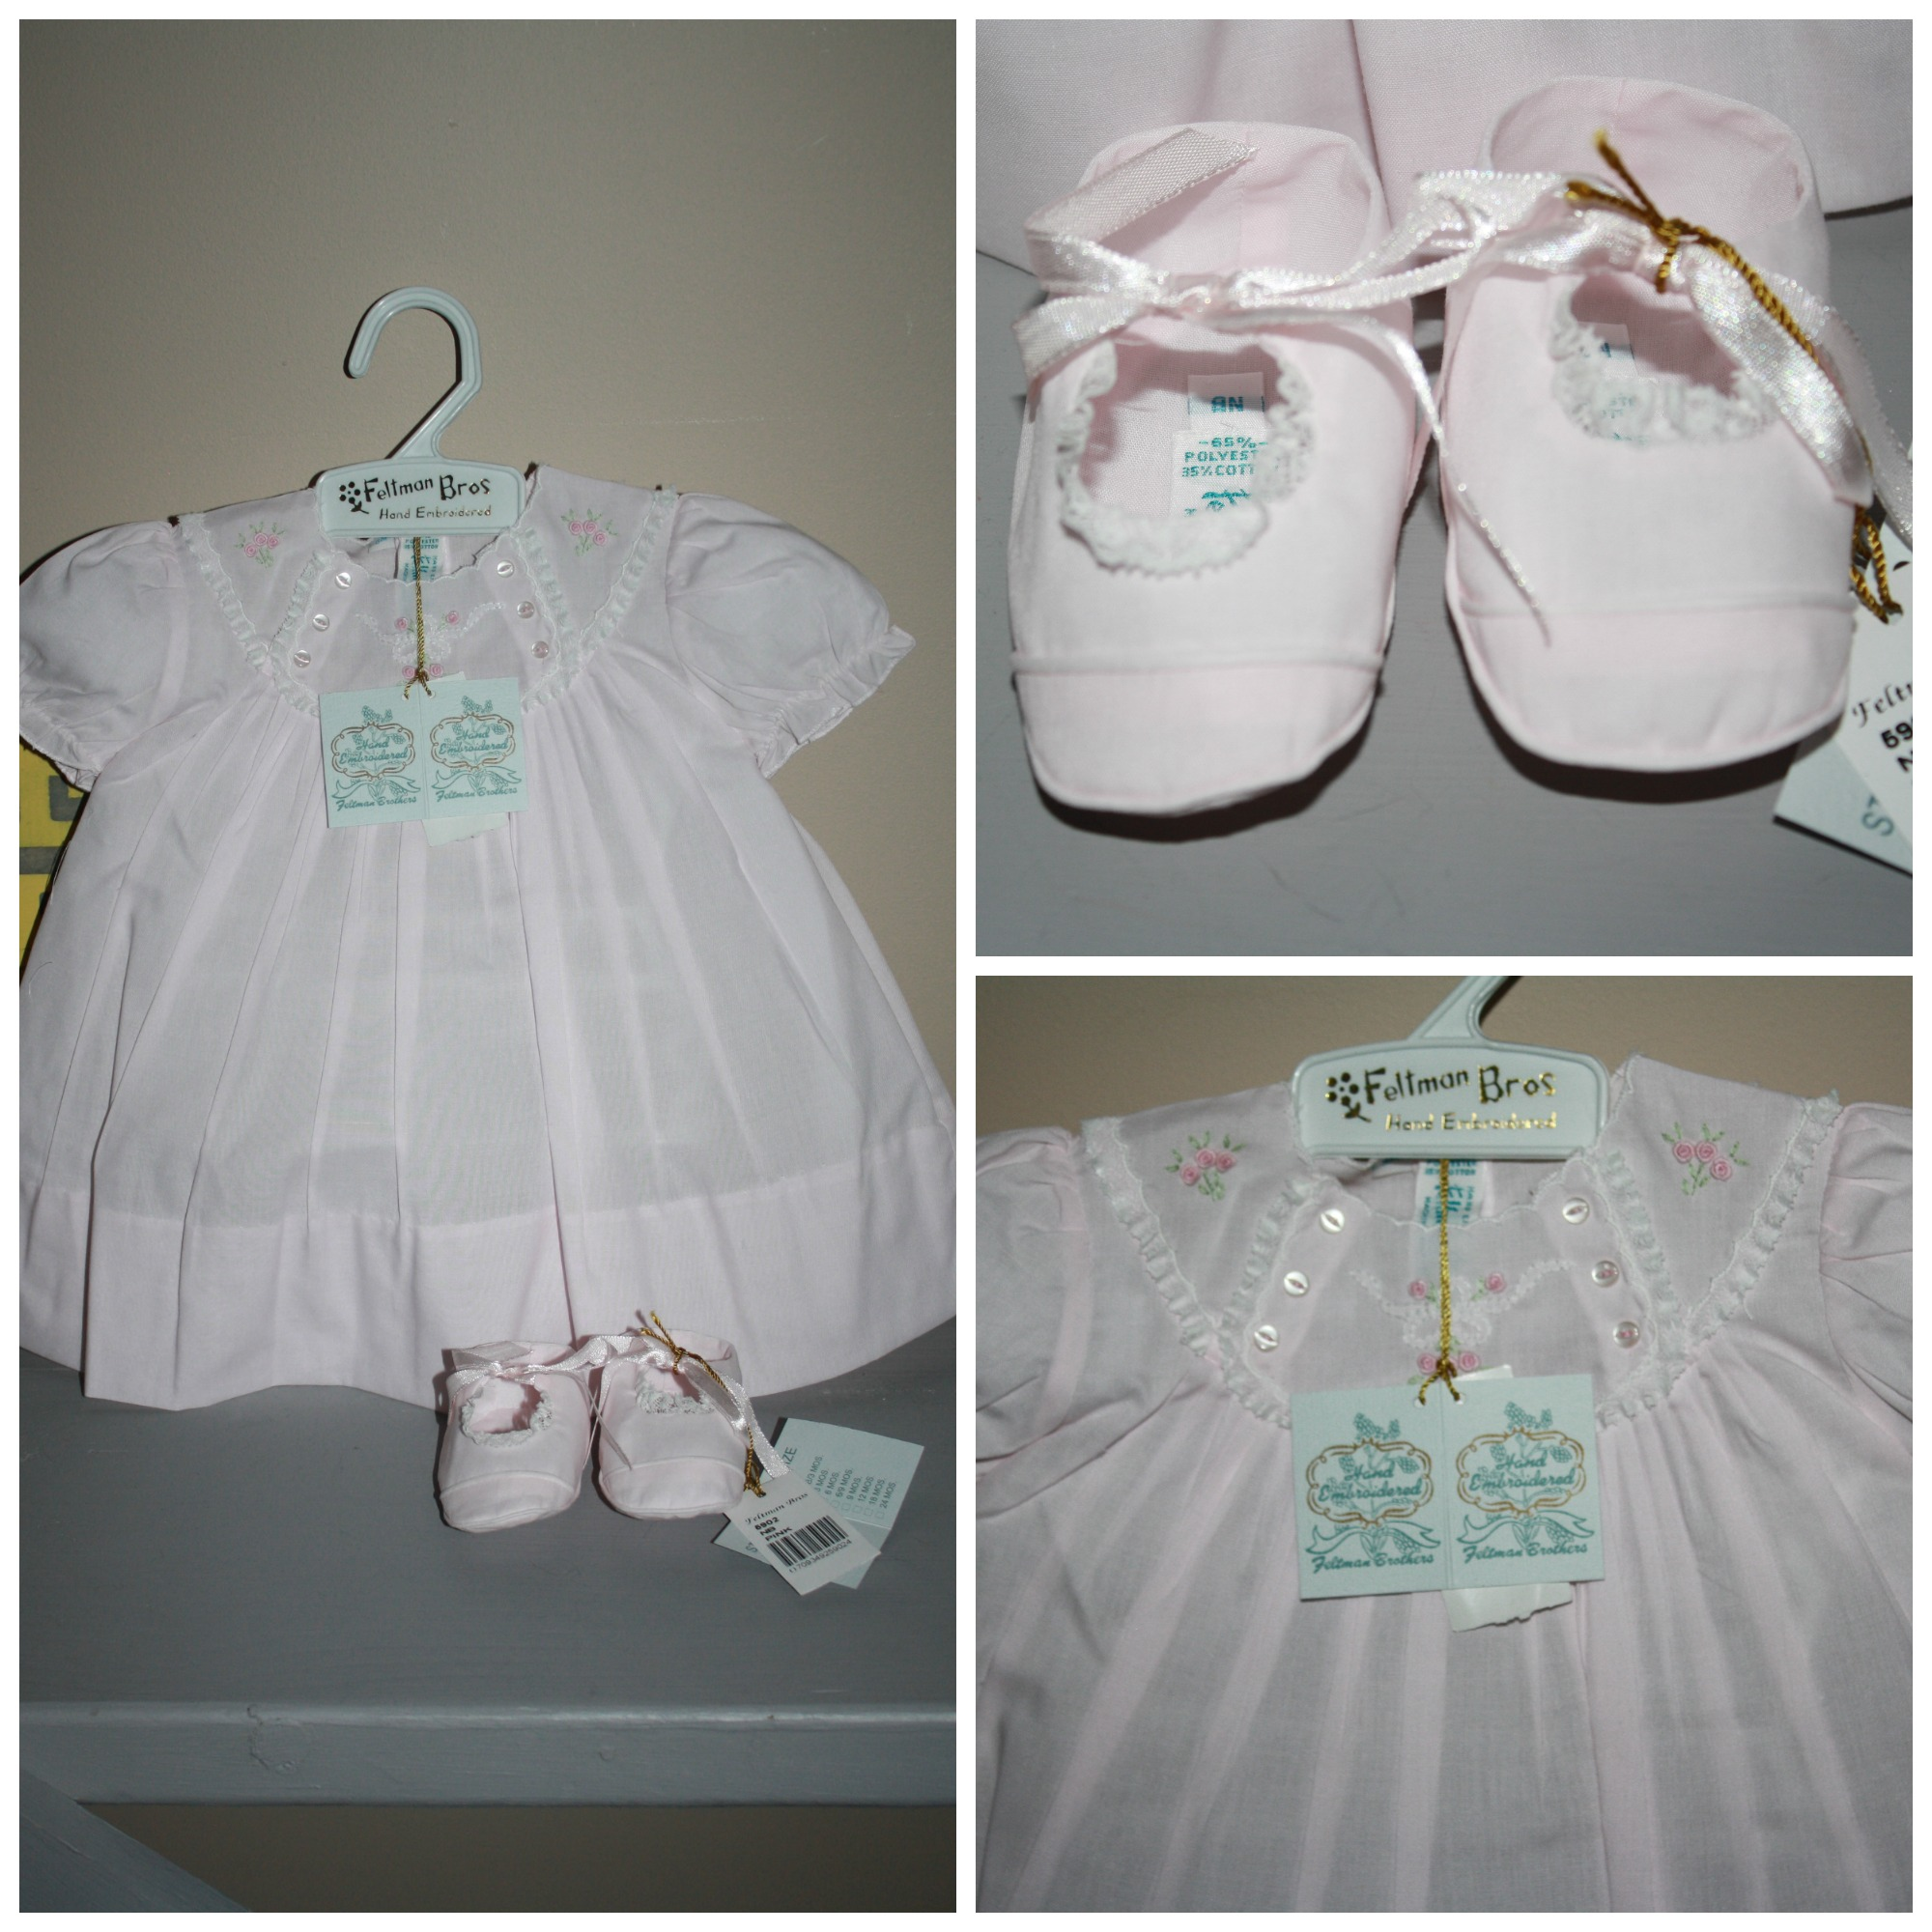 Feltman Brothers Heirloom Baby Clothing Perfect For Easter